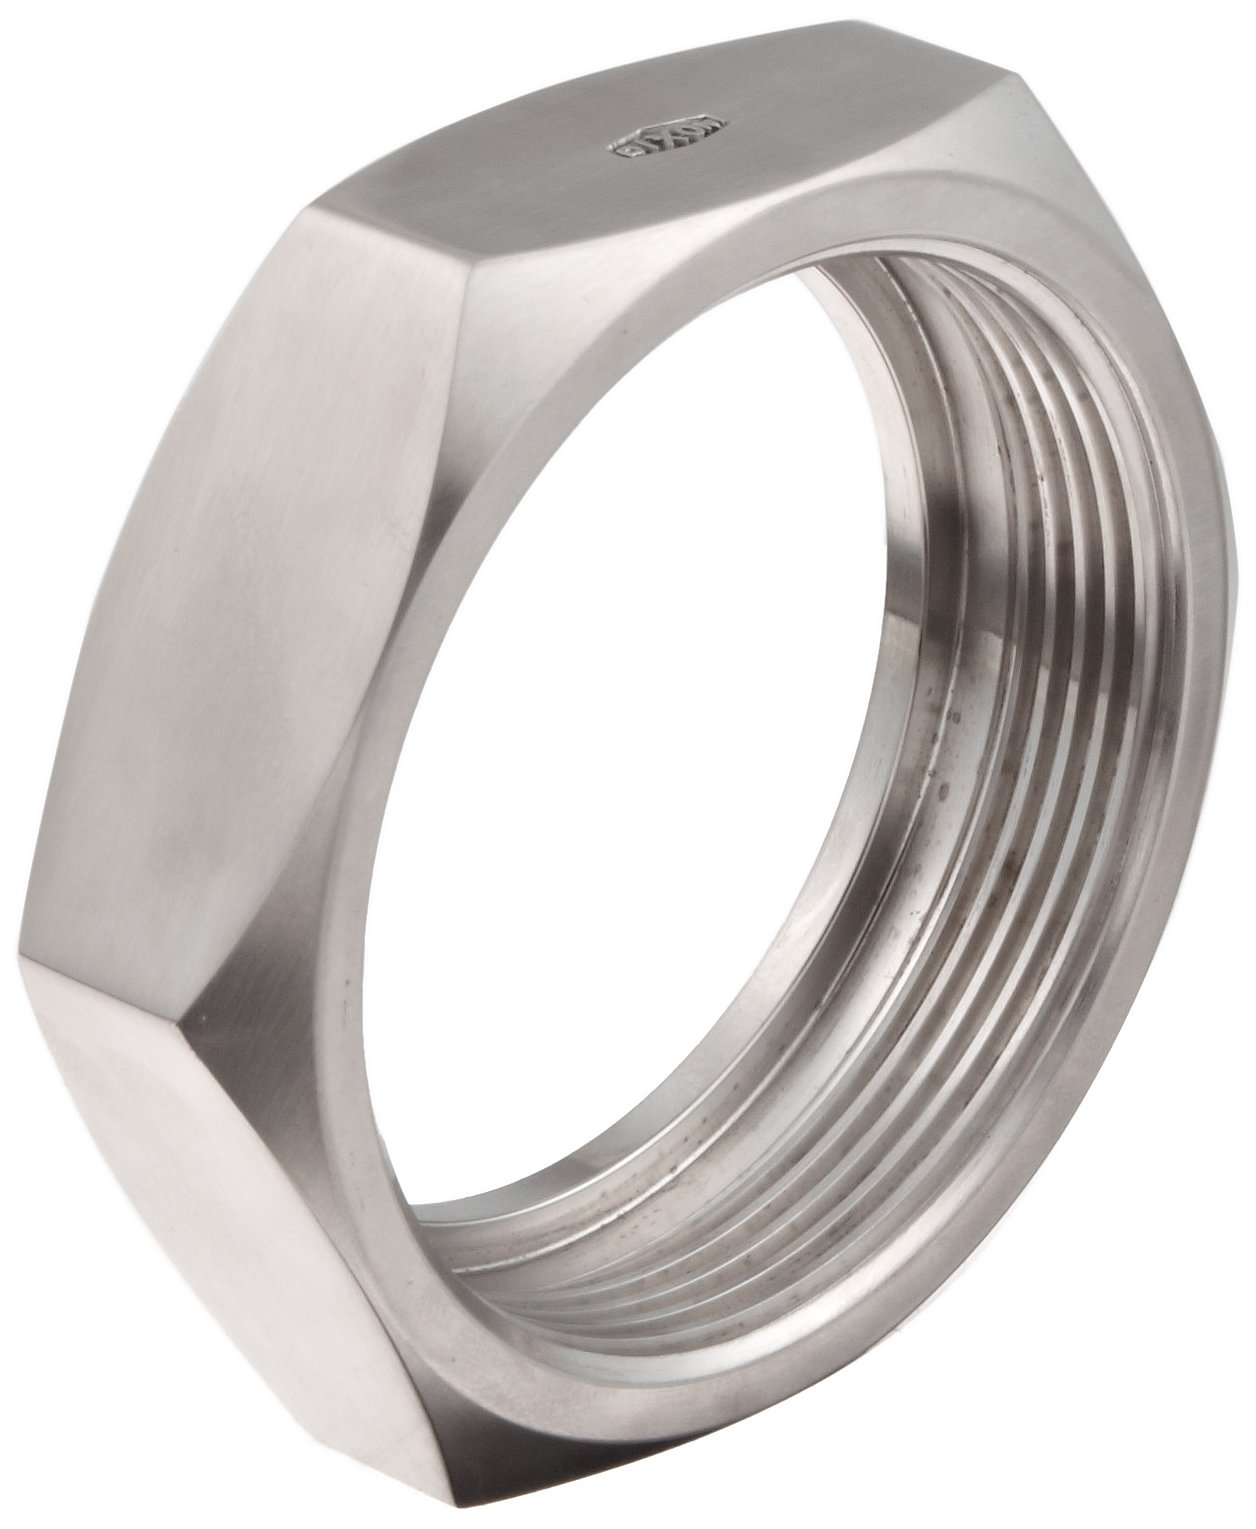 Dixon 13H-G400 Stainless Steel 304 Sanitary Fitting, Bevel Seat Hex Union Nut, 4'' Tube OD